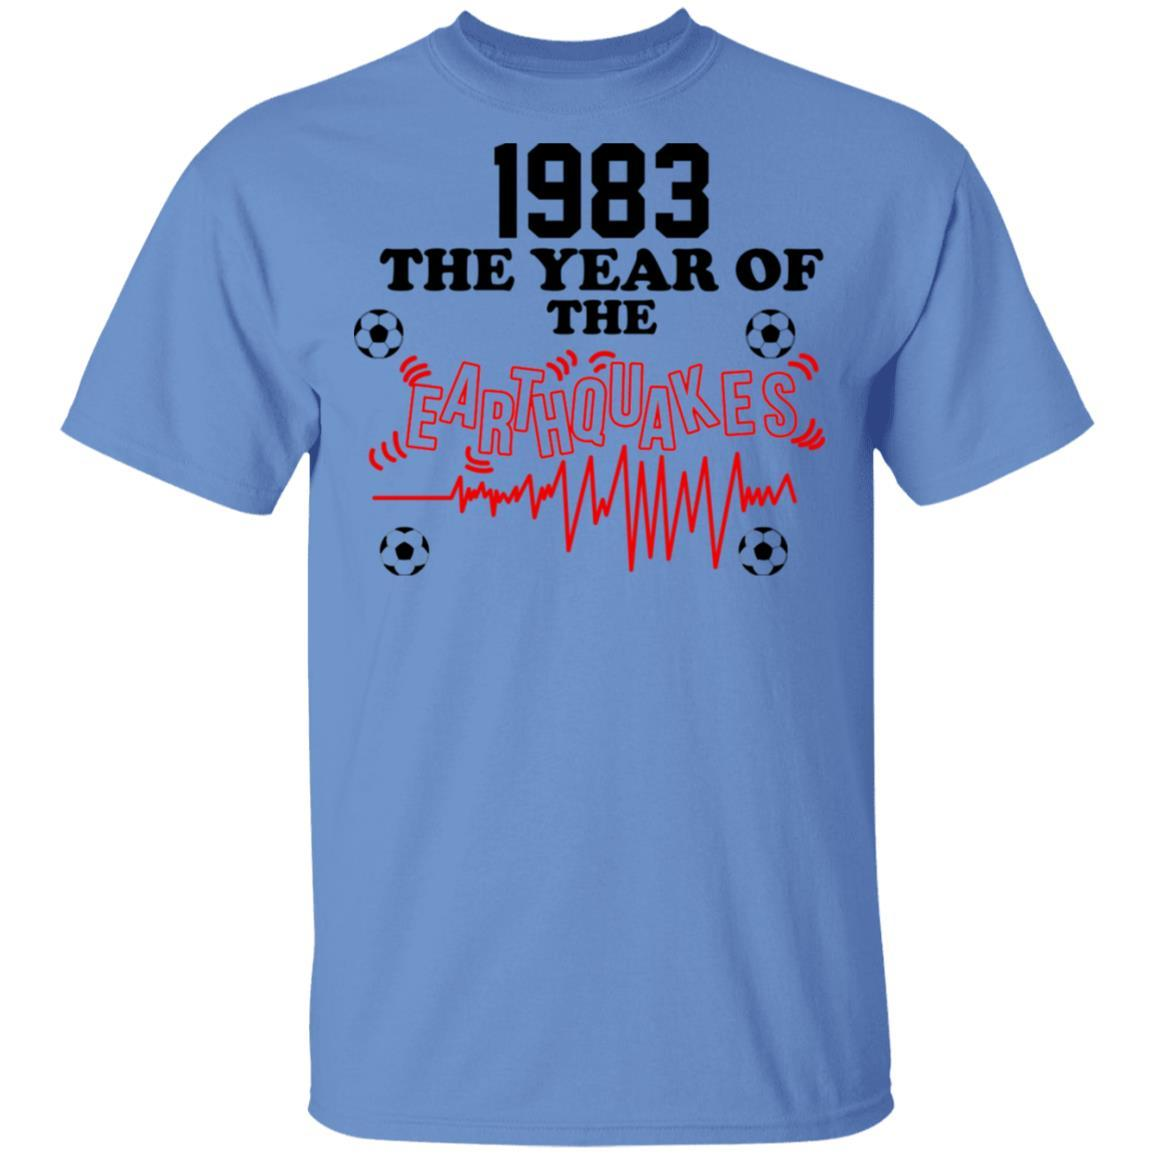 1983 The Year Of The Earthquakes San Jose Earthquakes T-Shirts, Hoodies 1049-9955-86355409-48160 - Tee Ript